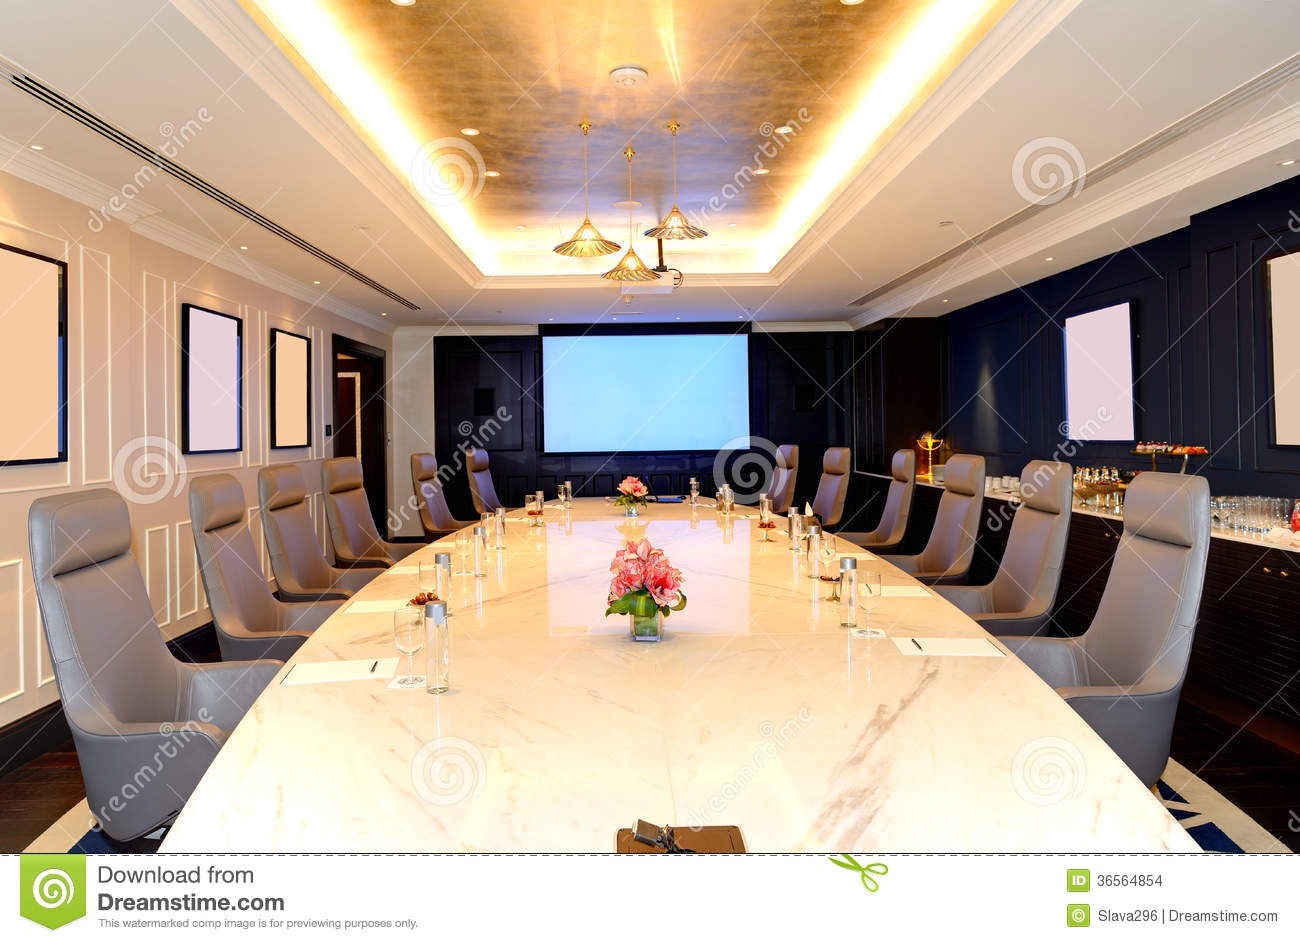 Interior Design Web App The Meeting Room Interior At Luxury Hotel Stock Images